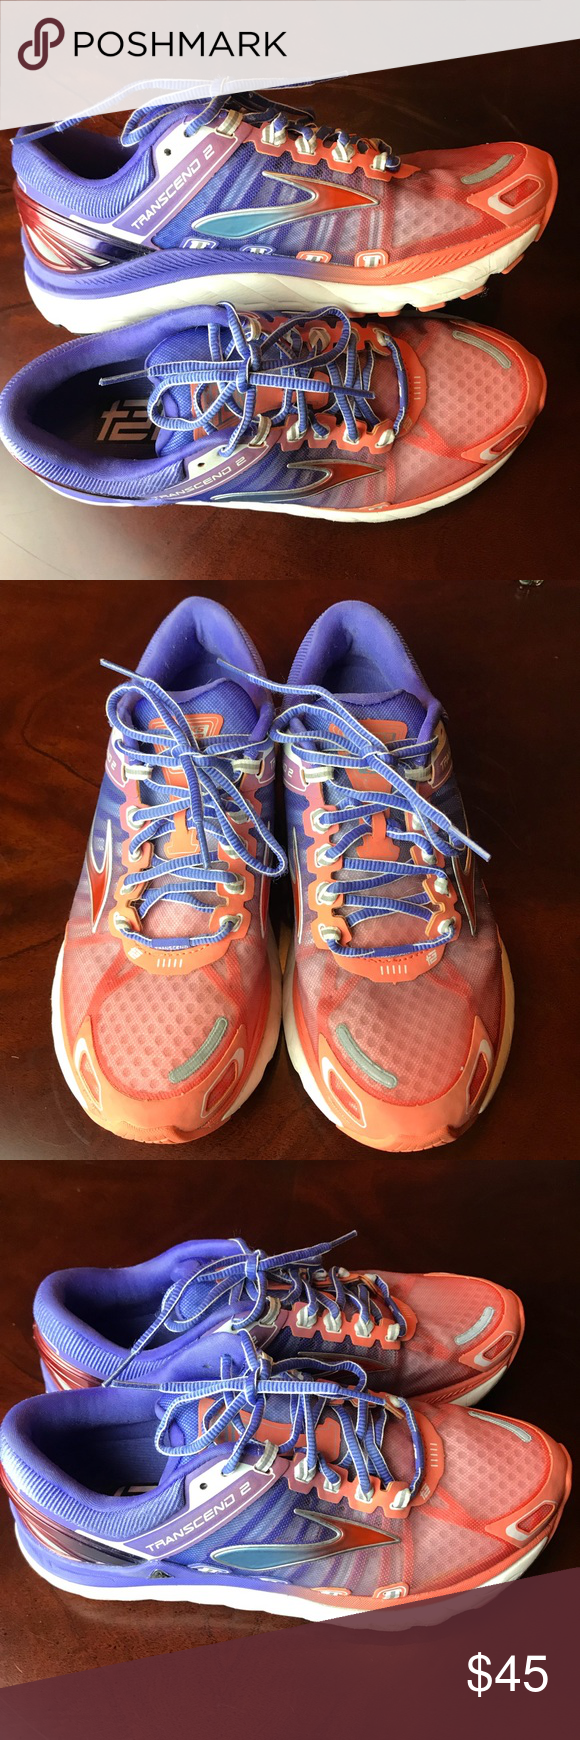 bb01bd455f89e Brooks Transcend 2 Running Shoes Brooks Transcend 2 Running Shoes  1201831B802 Fresh Salmon Blue Iris Silver Women s Size 8.5 Size  8.